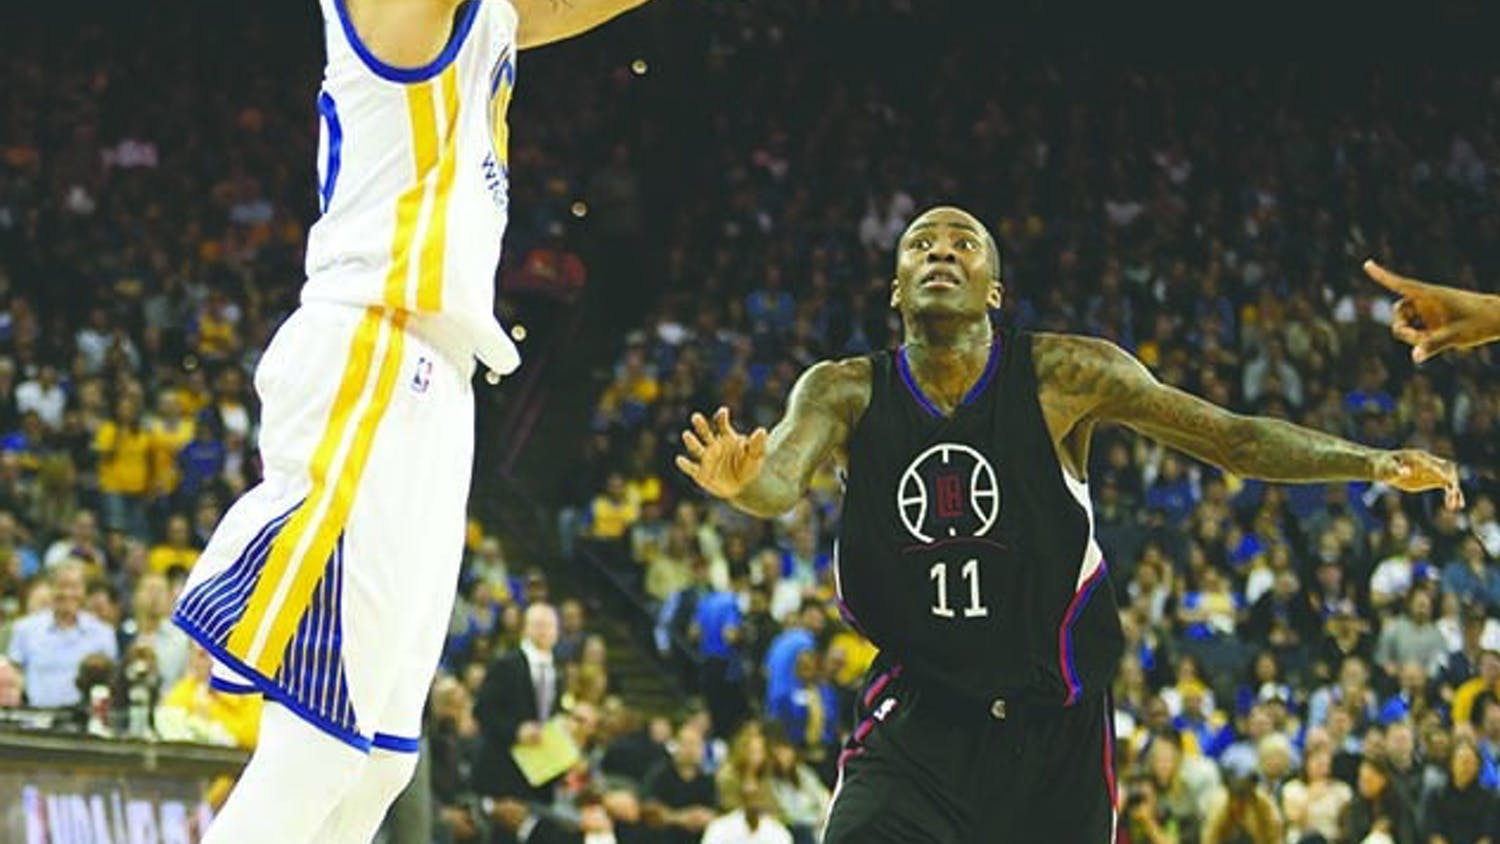 The Golden State Warriors' Stephen Curry, left, shoots against the Los Angeles Clippers' Jamal Crawford (11) in the second quarter at Oracle Arena in Oakland, Calif., on Wednesday, March 23, 2016. (Anda Chu/Bay Area News Group/TNS)